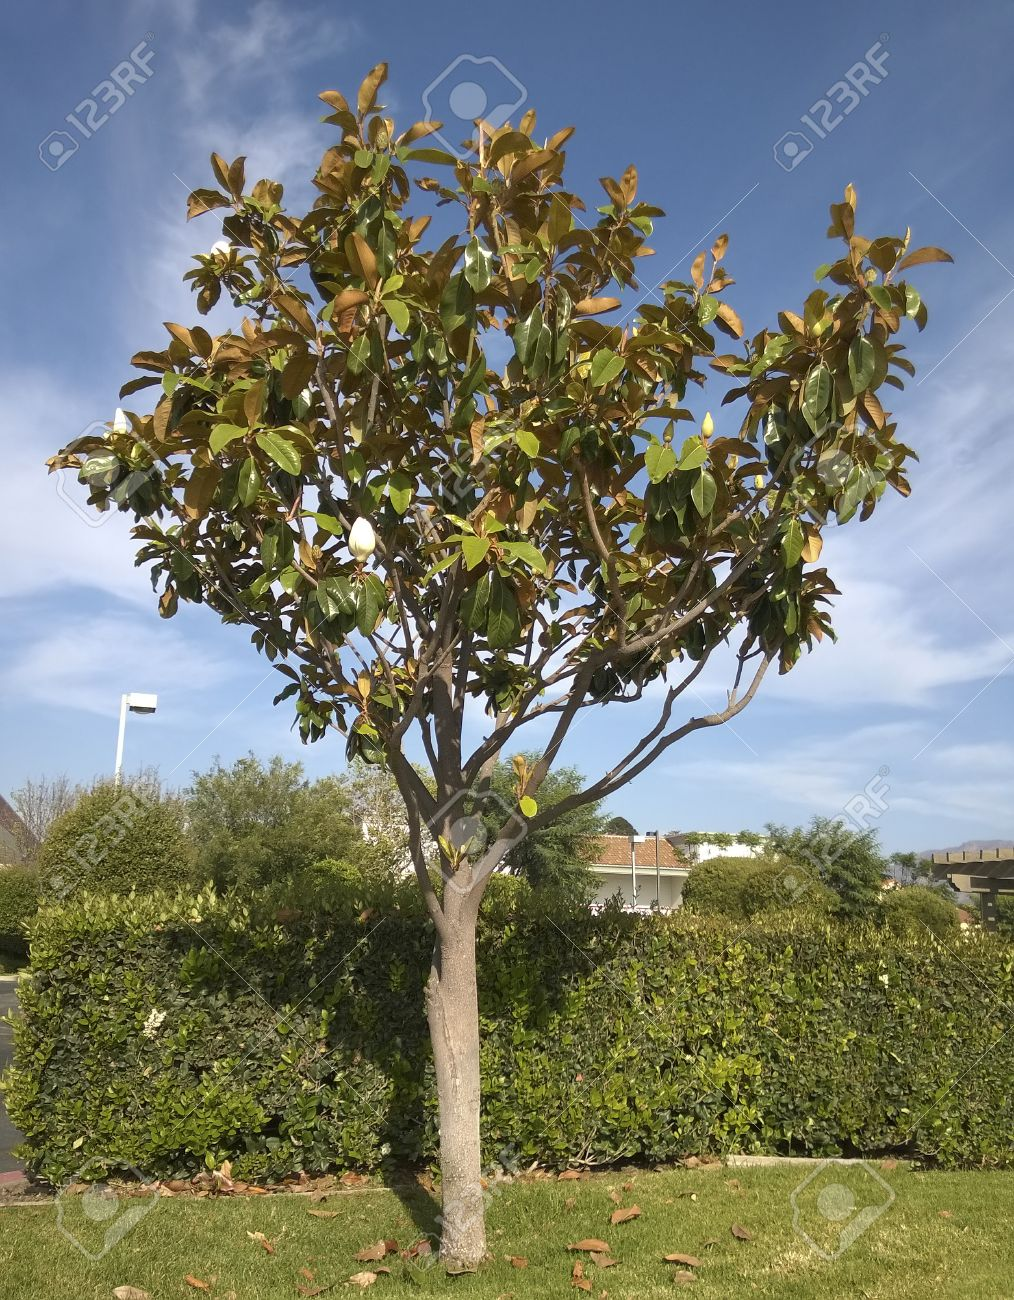 Southern california magnolia tree with open white flowers stock southern california magnolia tree with open white flowers stock photo 29127481 mightylinksfo